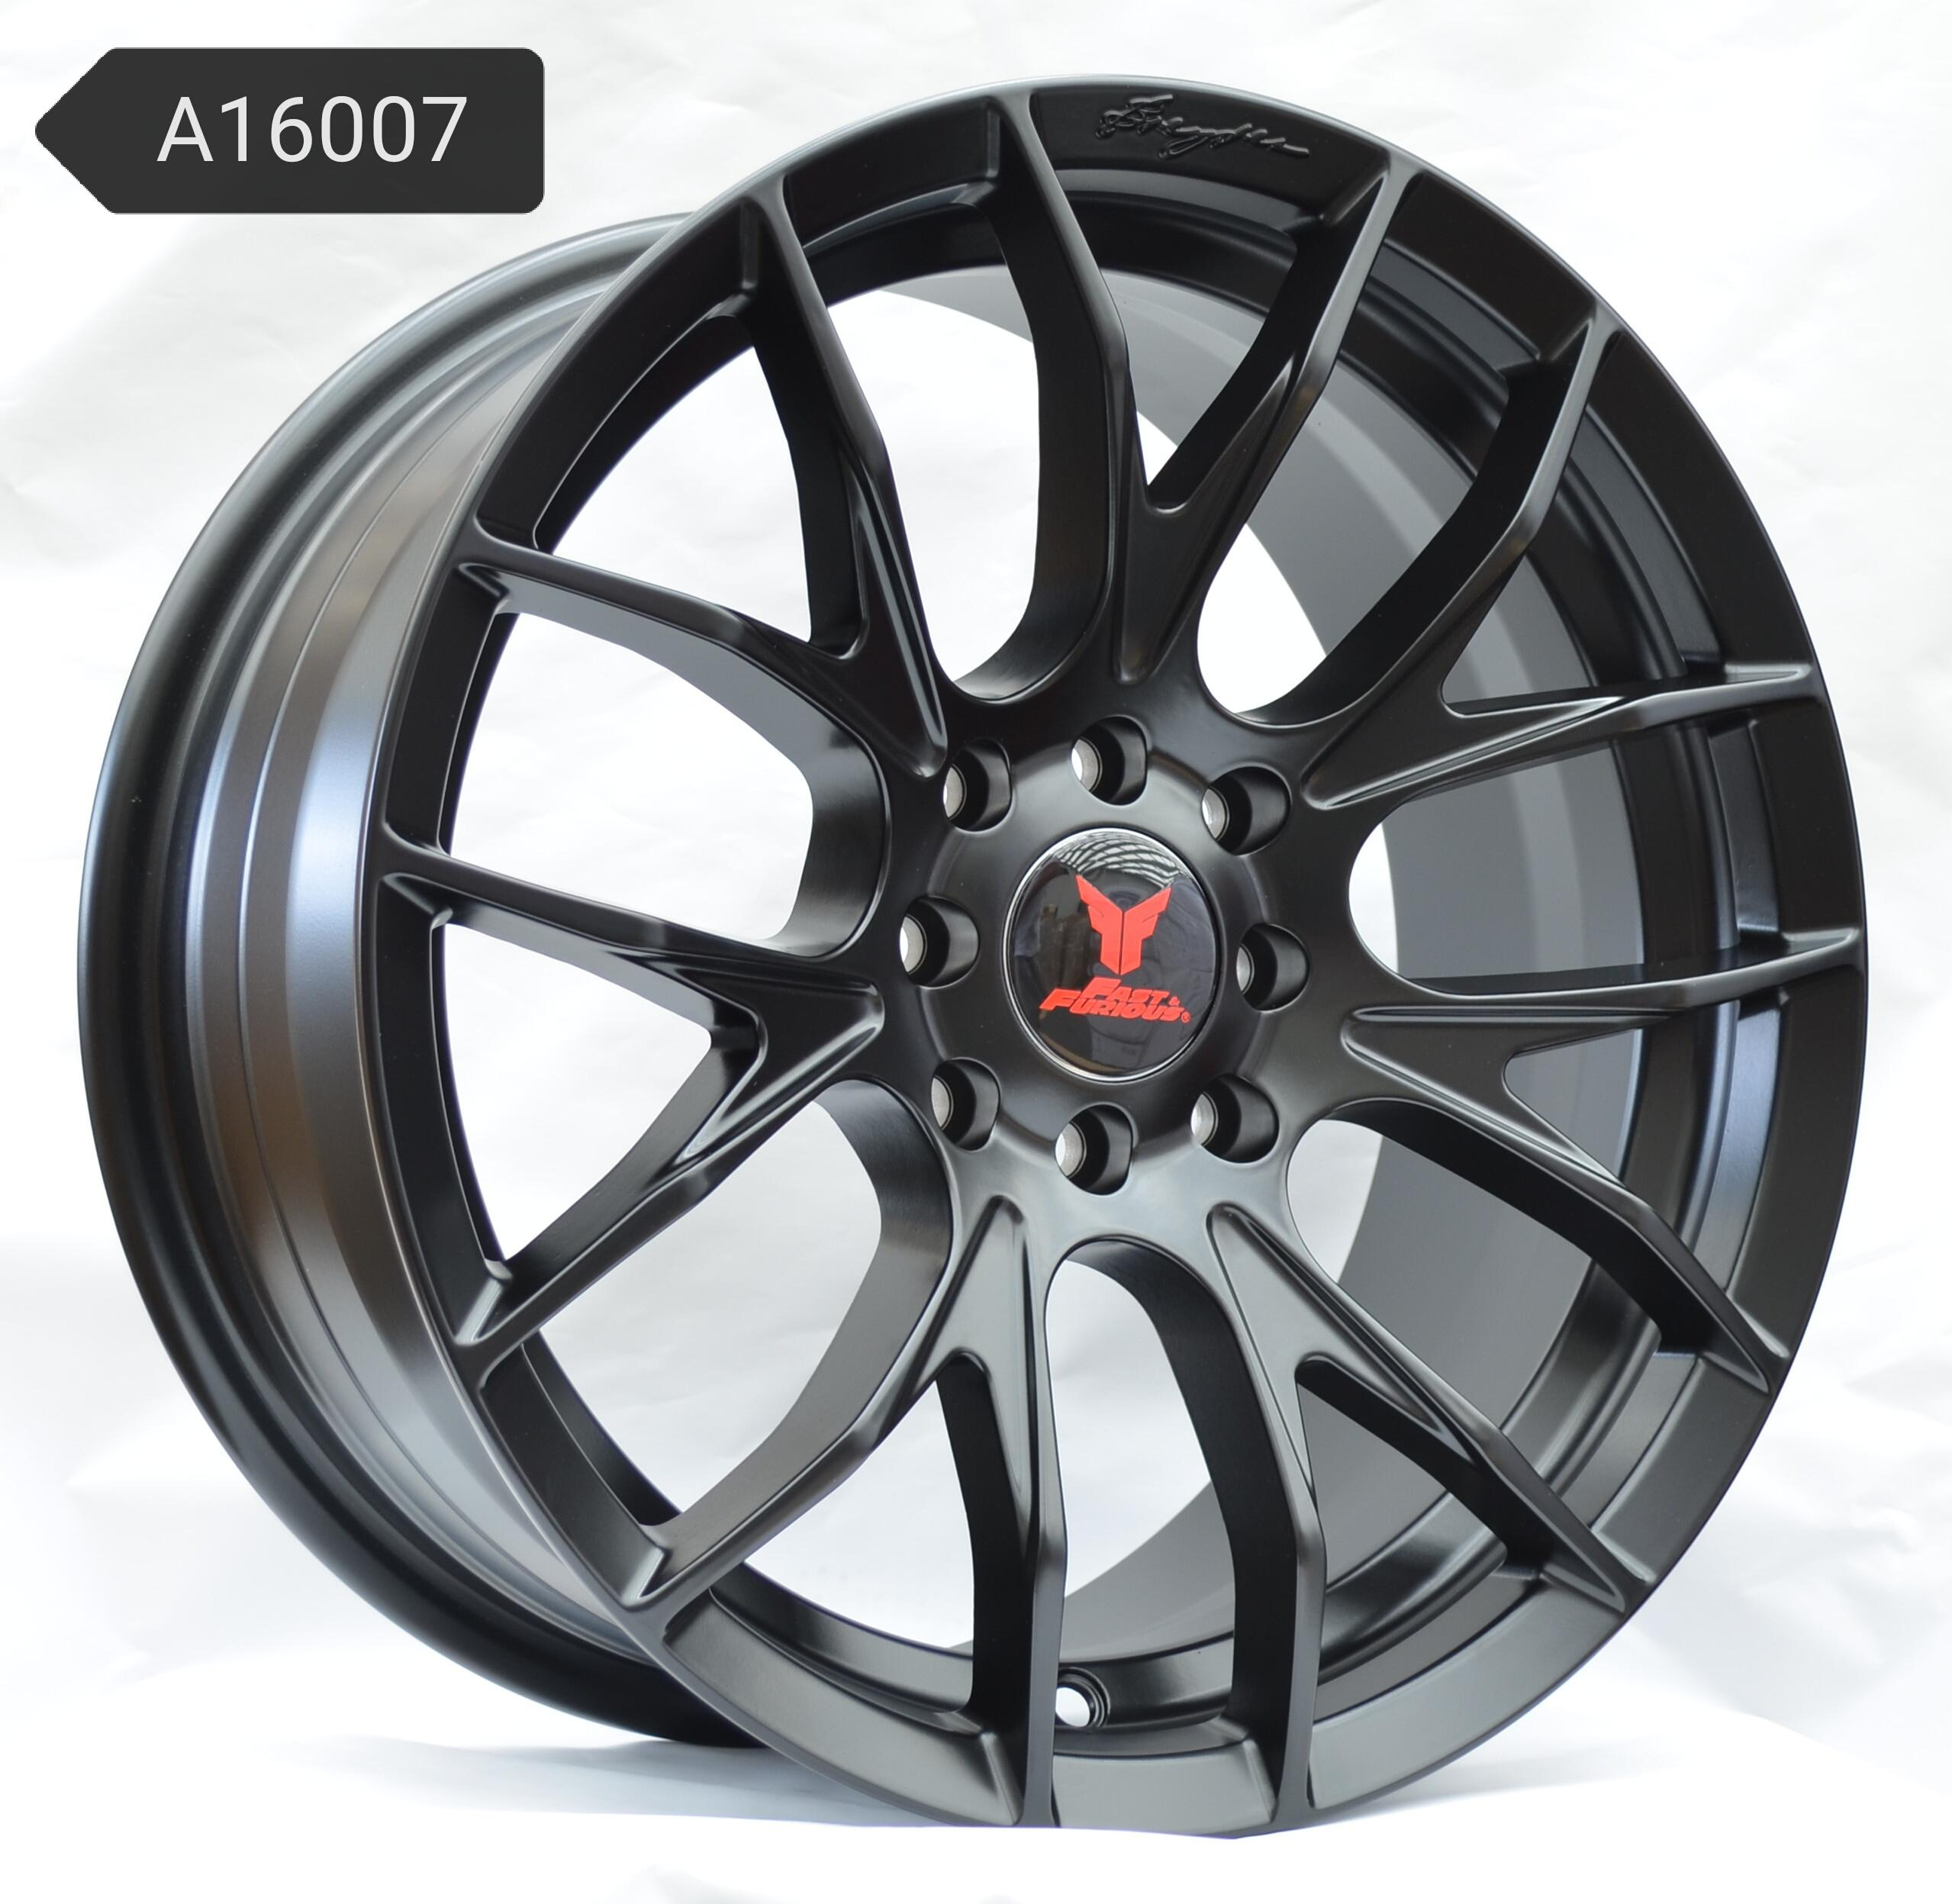 Tire Mags for sale - Car Rims online brands a6d5b96dde